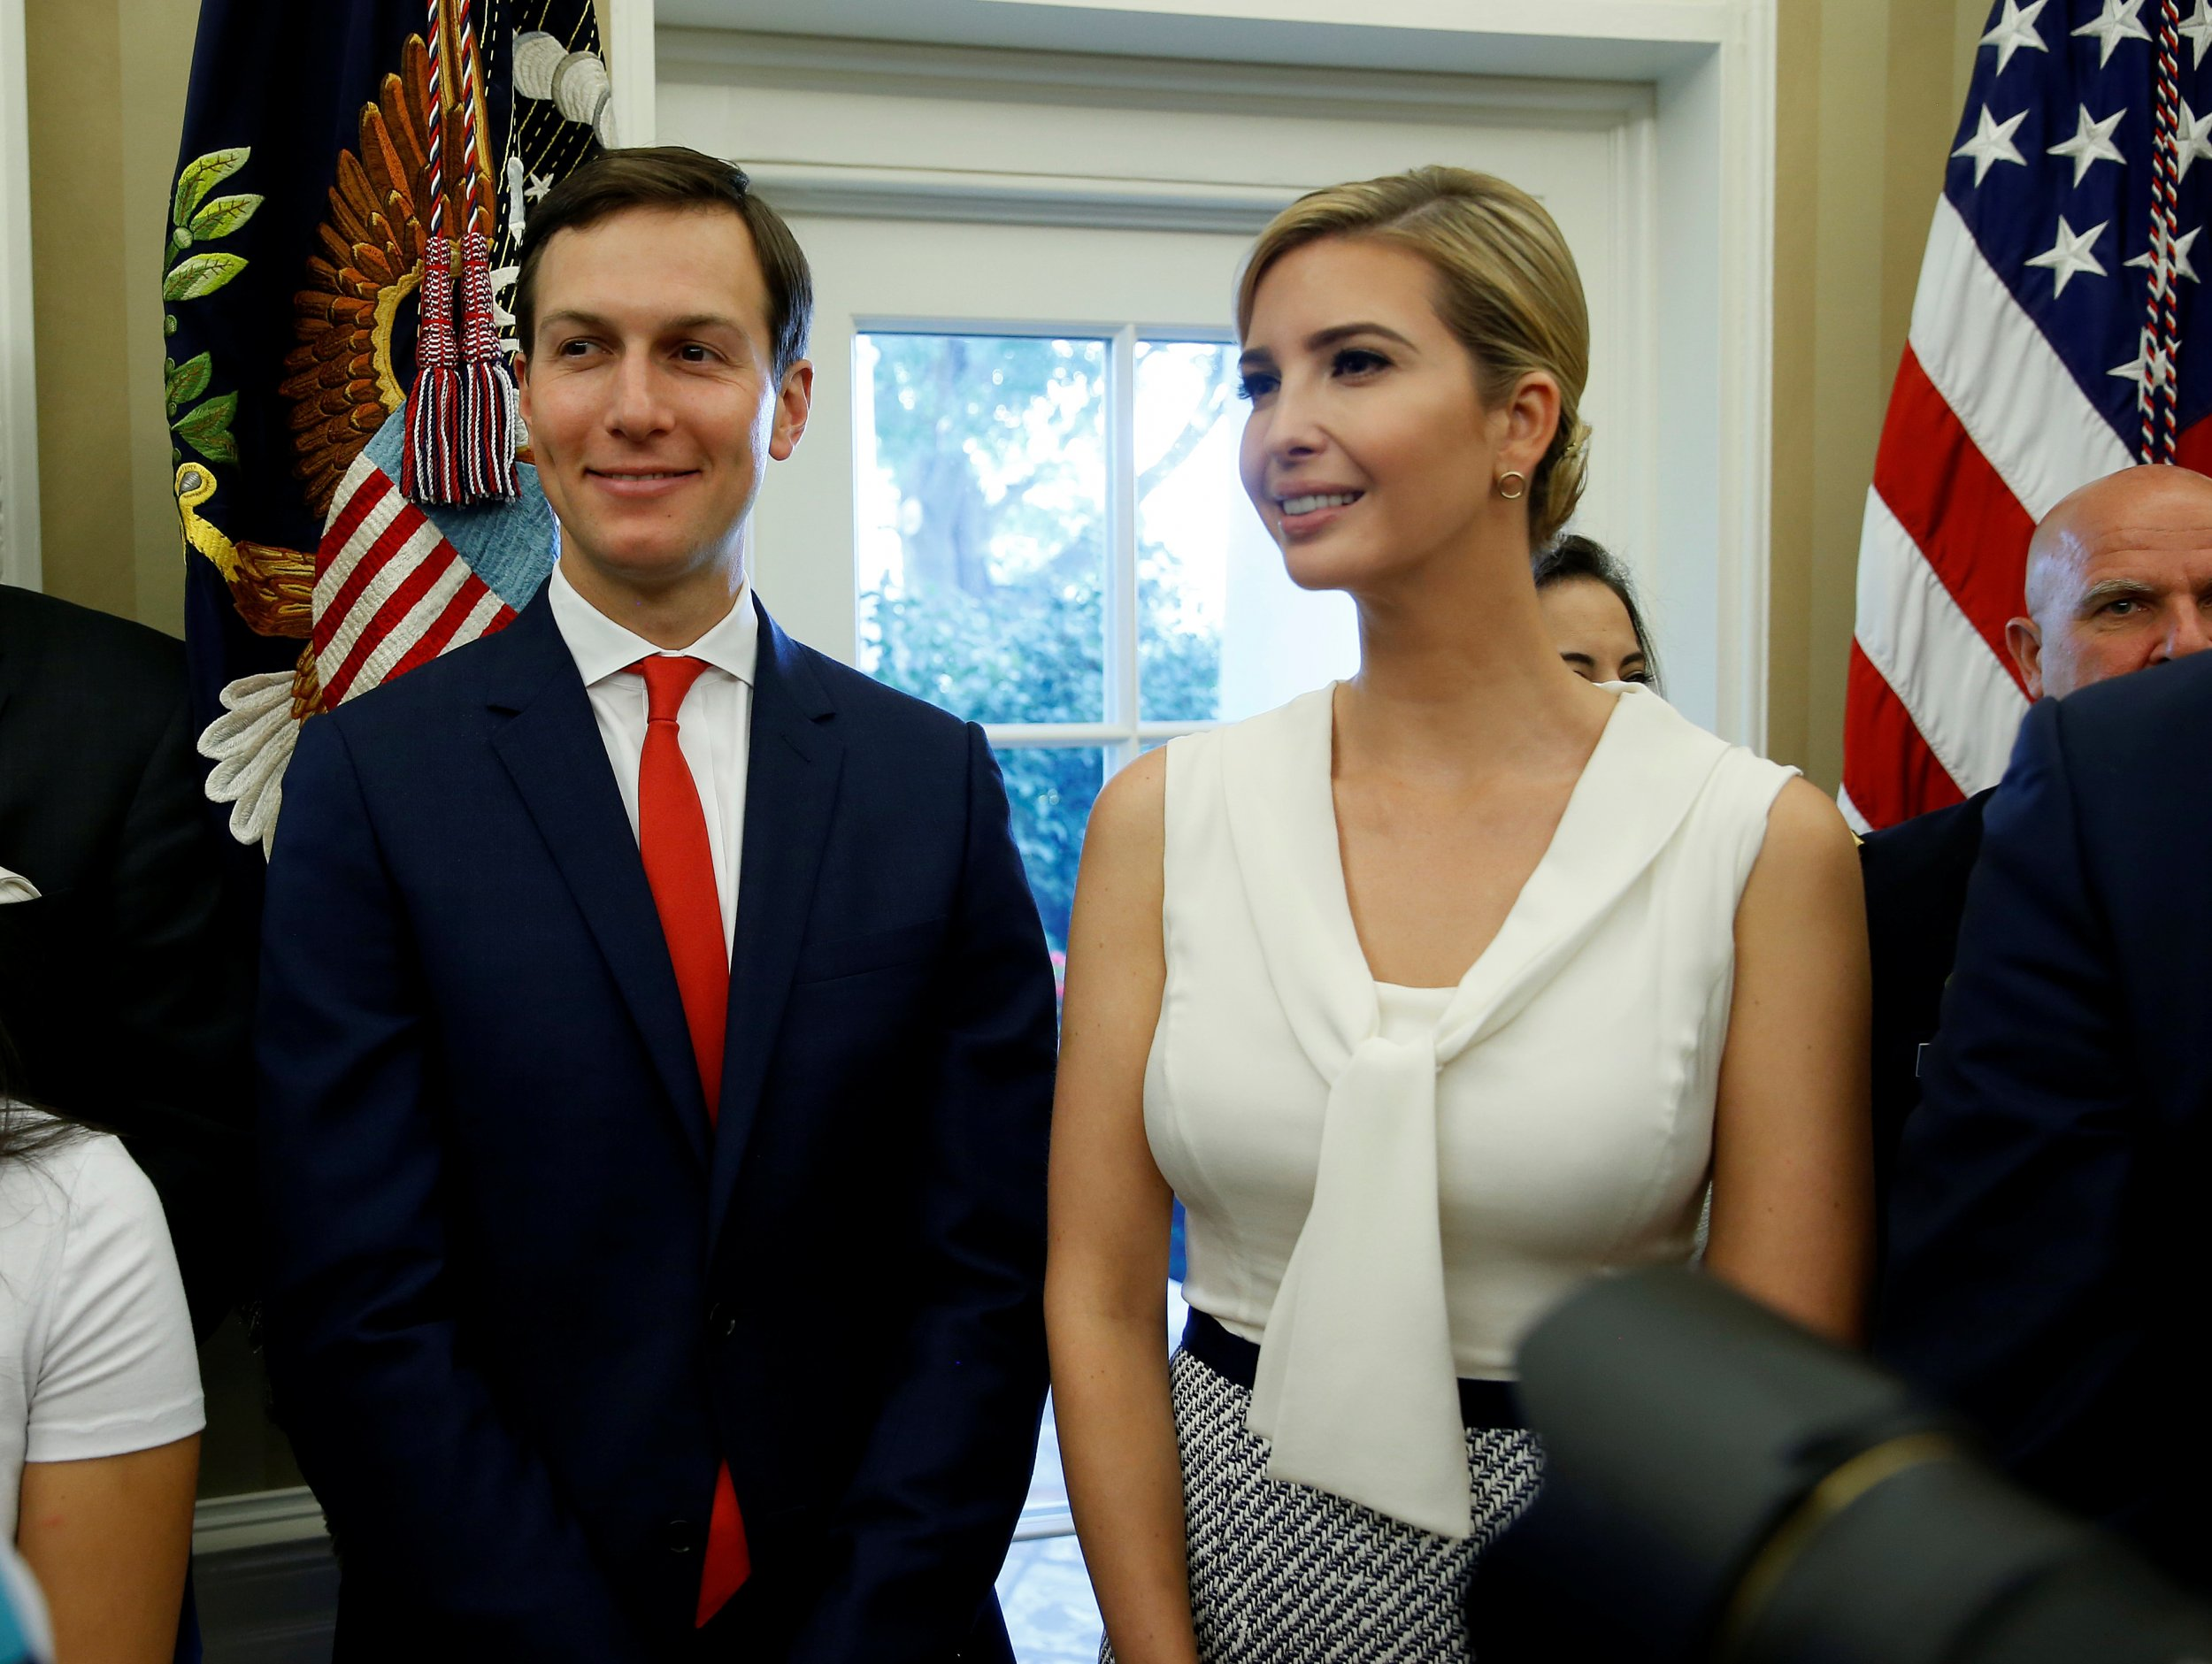 Kushner and Ivanka Trump